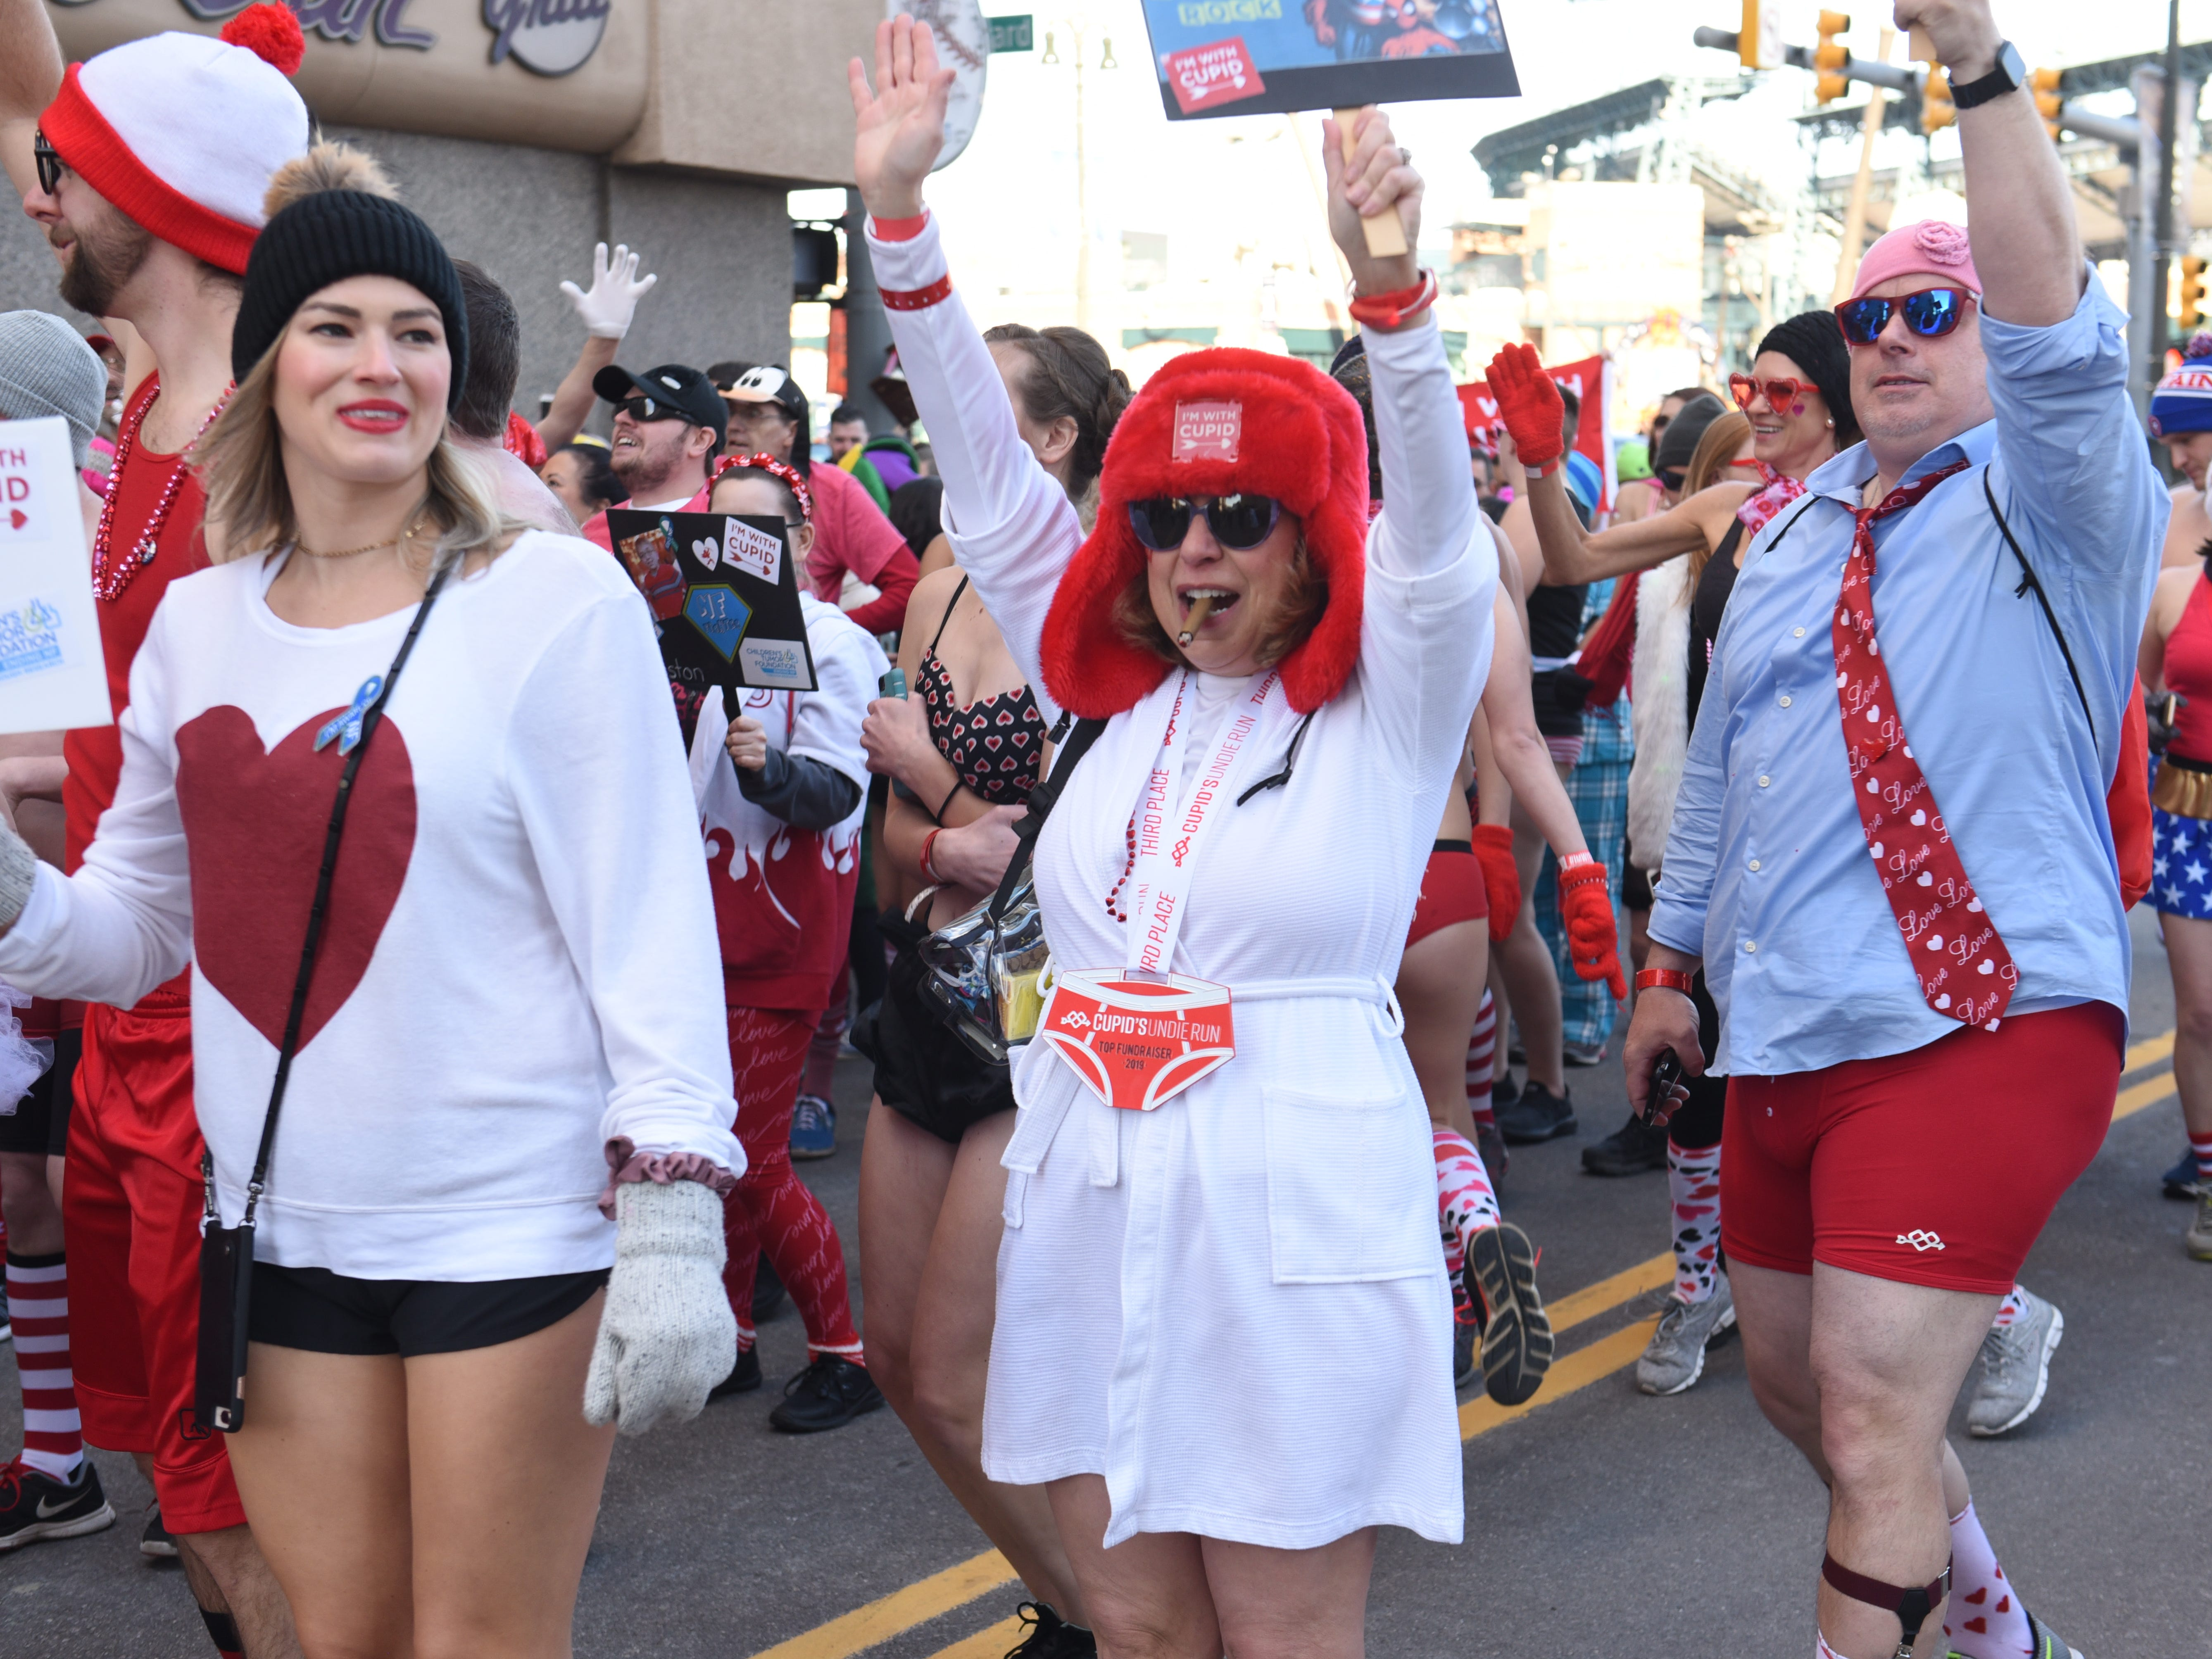 Participants gather outiside The Fillmore Detroit for the start of Cupid's Undie Run.